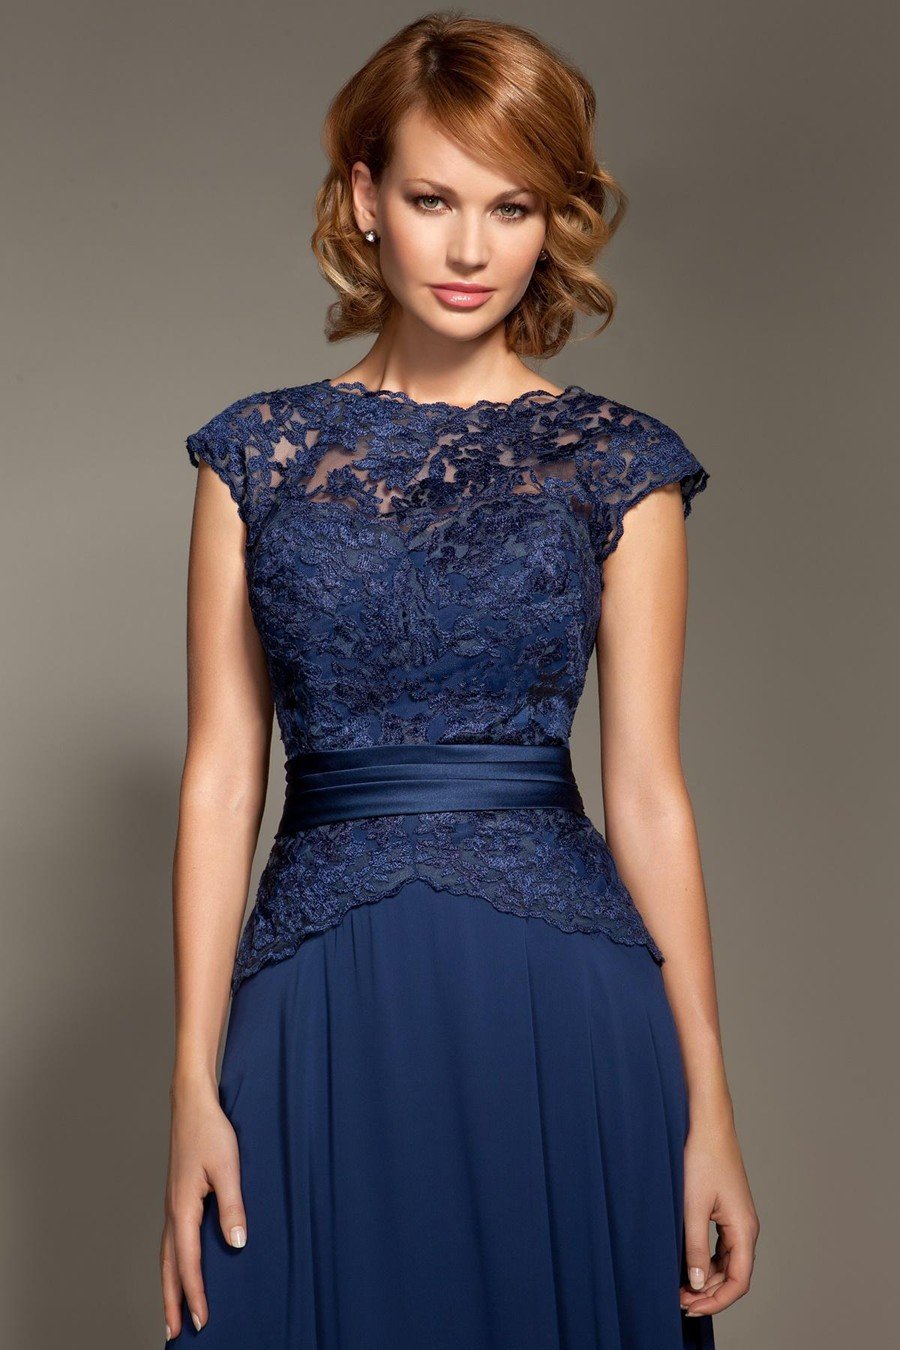 Cheap Dark Navy Blue Lace Cap Sleeve Chiffon Floor-Length Mother Of The Bride Dresses Party Dresses Prom Dresses (3)